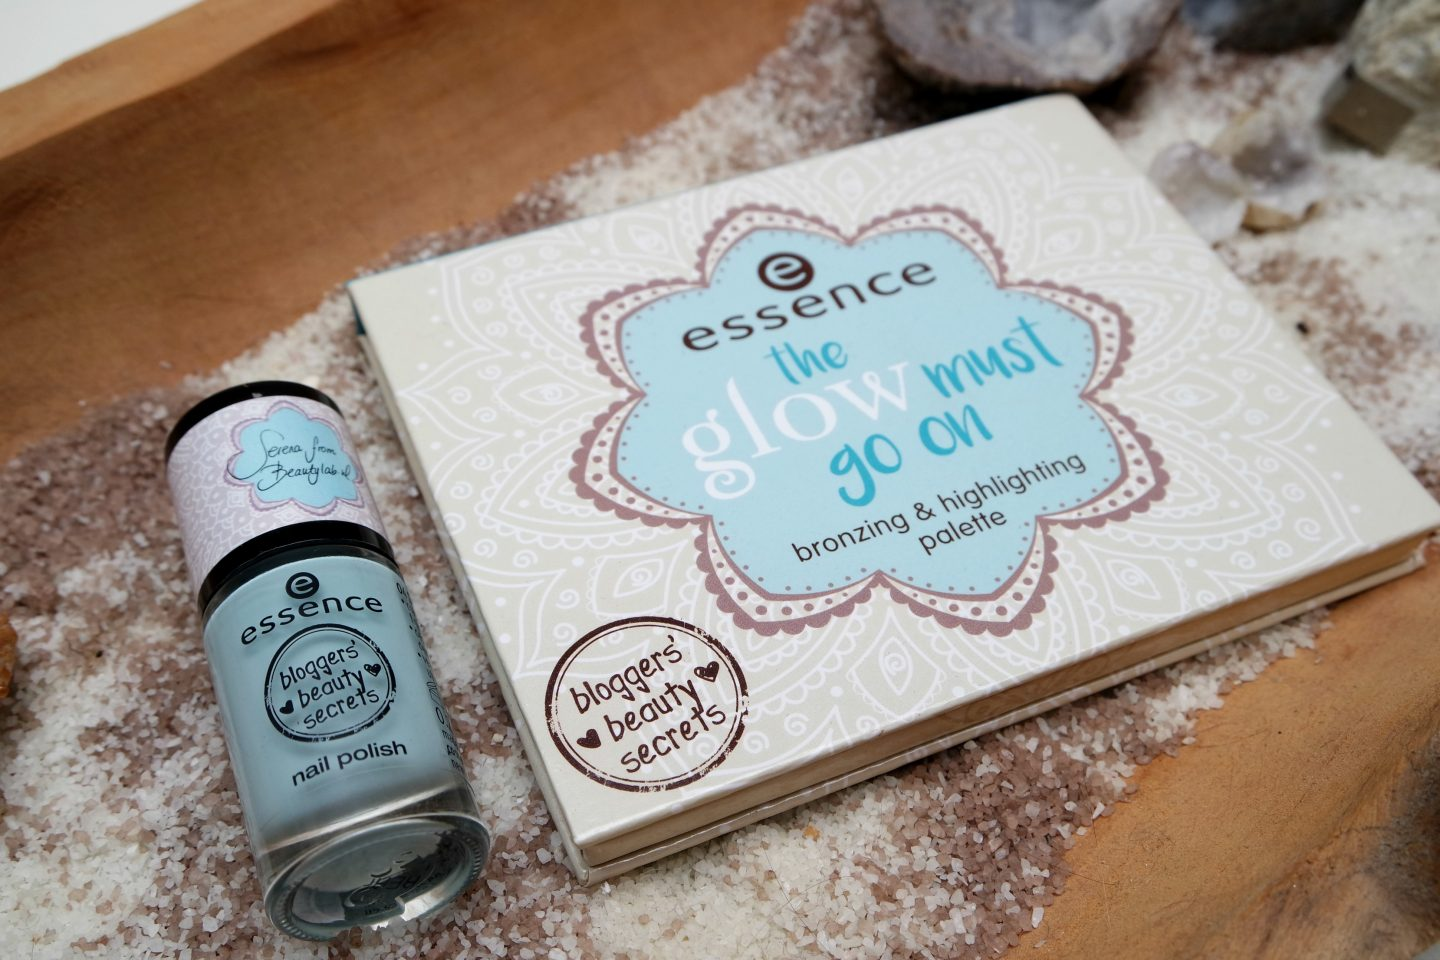 Beautylab x Essence The Glow Must Go On Palette + Shine Bright Nail polish